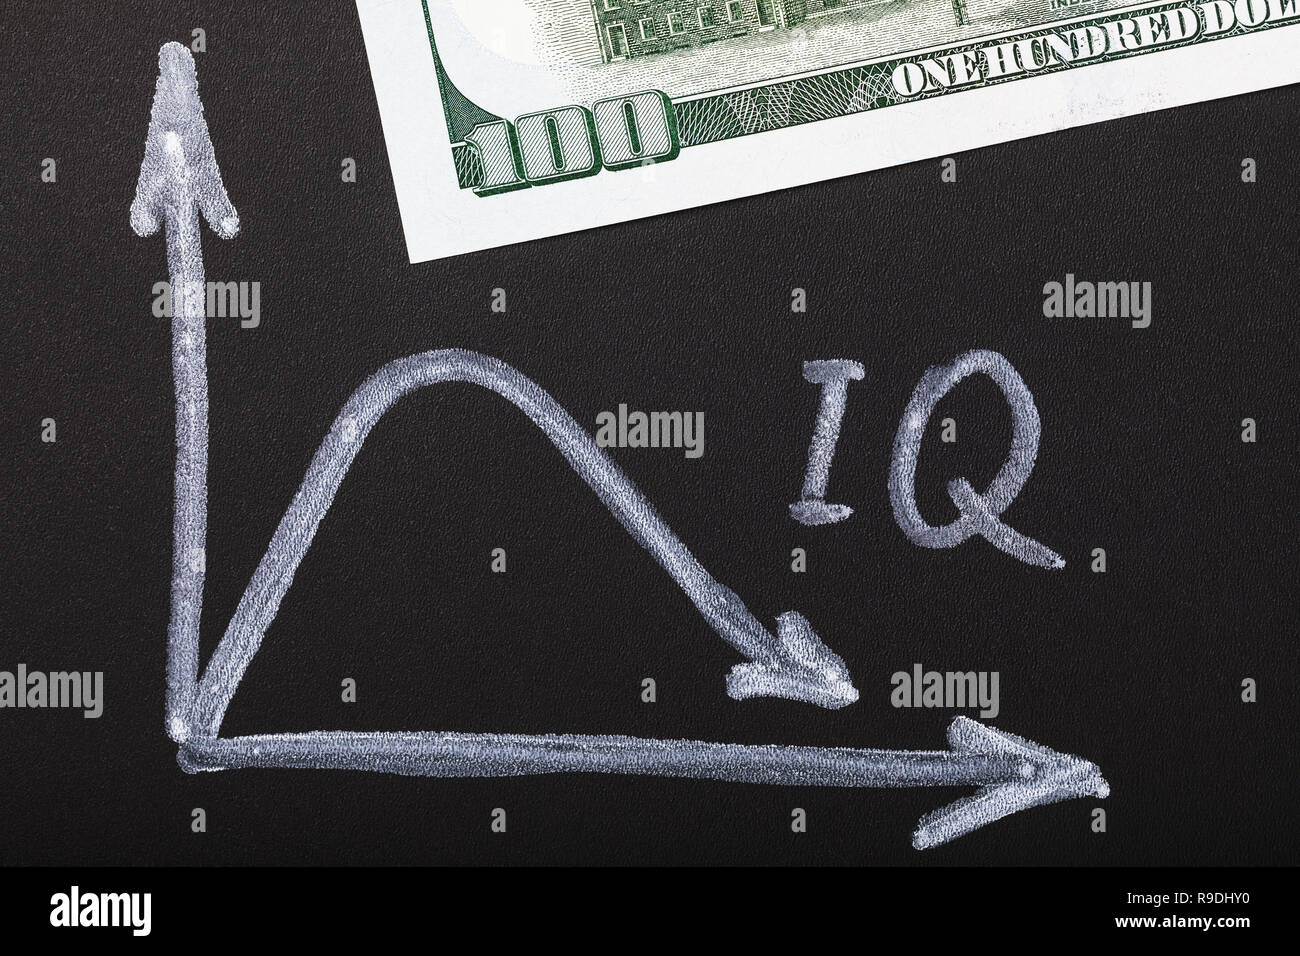 Concept on the effect of low IQ on income growth - Stock Image